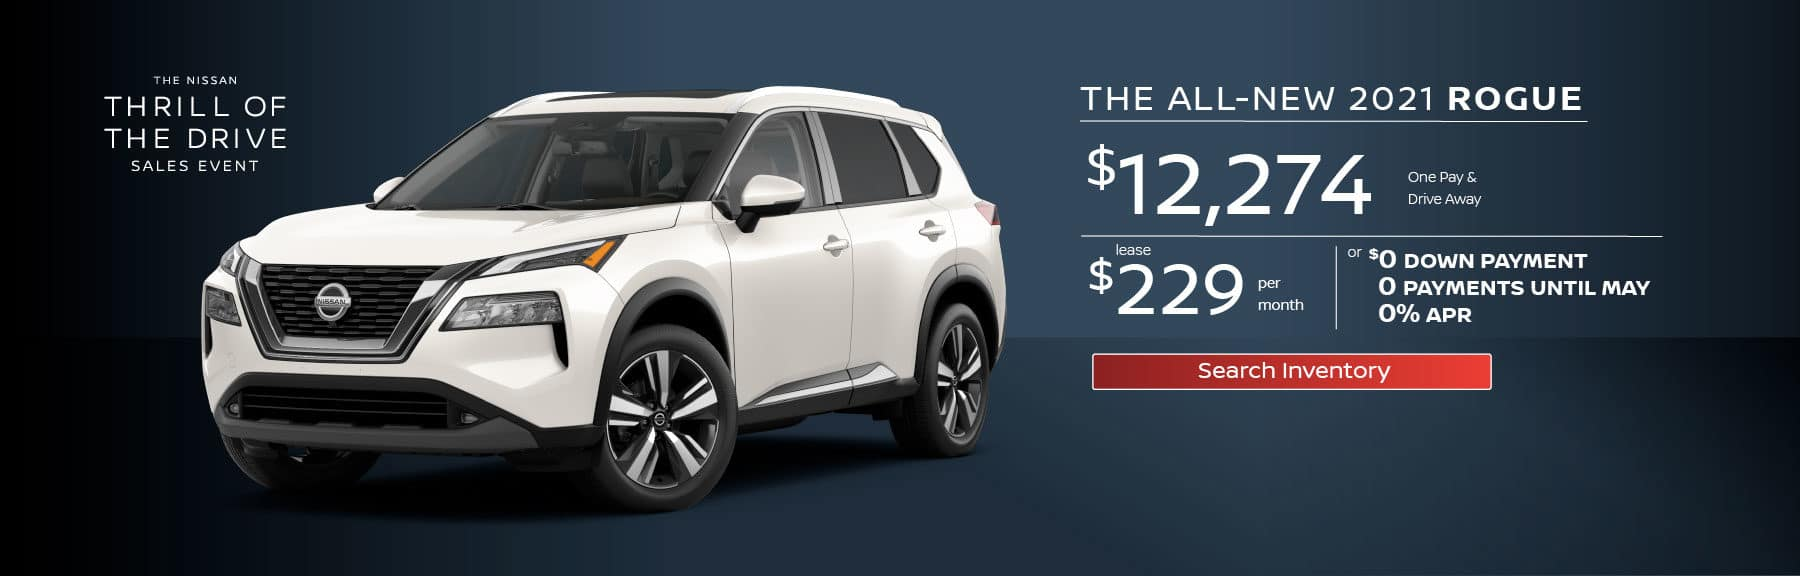 2021 Rogue One Pay & Drive Away for $12,274 or $229 per month for 36 months, or $0 down, 0 payments until May, 0% APR